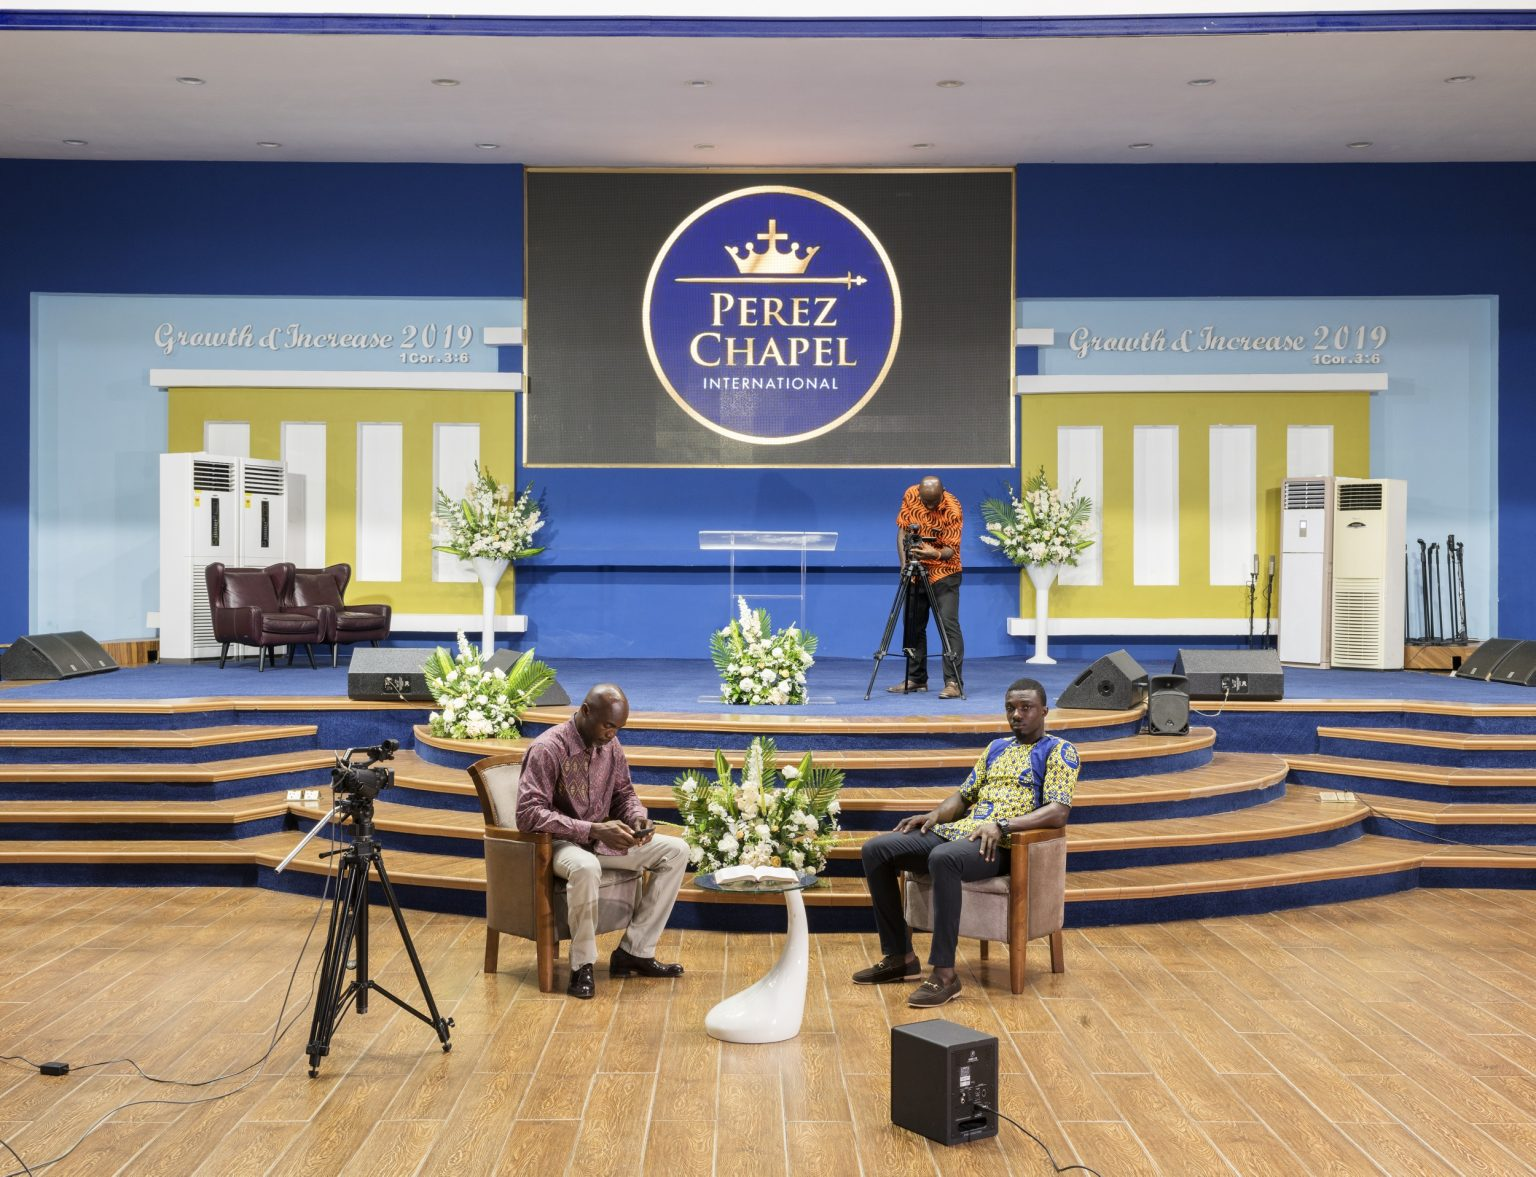 Accra, Republic of Ghana, May 2019 - Pastors of the Perez Chapel International before recording a television program at the Perez Dome. Perez Chapel International, formerly known as the Word Miracle Church International is an evangelical, Charismatic church founded in Tamale, Northern Ghana in 1987 by bishop Charles Agyinasare who is nowadays among the richest pastors in Ghana. With over 400 local branches and several abroad is one of the leading churches of the country. >< Accra, Repubblica del Ghana, maggio 2019 - Pastori della Perez Chapel International prima di registrare un programma televisivo al Perez Dome. Perez Chapel International, precedentemente nota come Word Miracle Church International è una chiesa evangelica carismatica fondata a Tamale, nel nord del Ghana nel 1987 dal vescovo Charles Agyinasare che è oggi tra i più ricchi pastori del Ghana. Con oltre 400 filiali locali e diverse altre all'estero e' tra le principali chiese del paese.